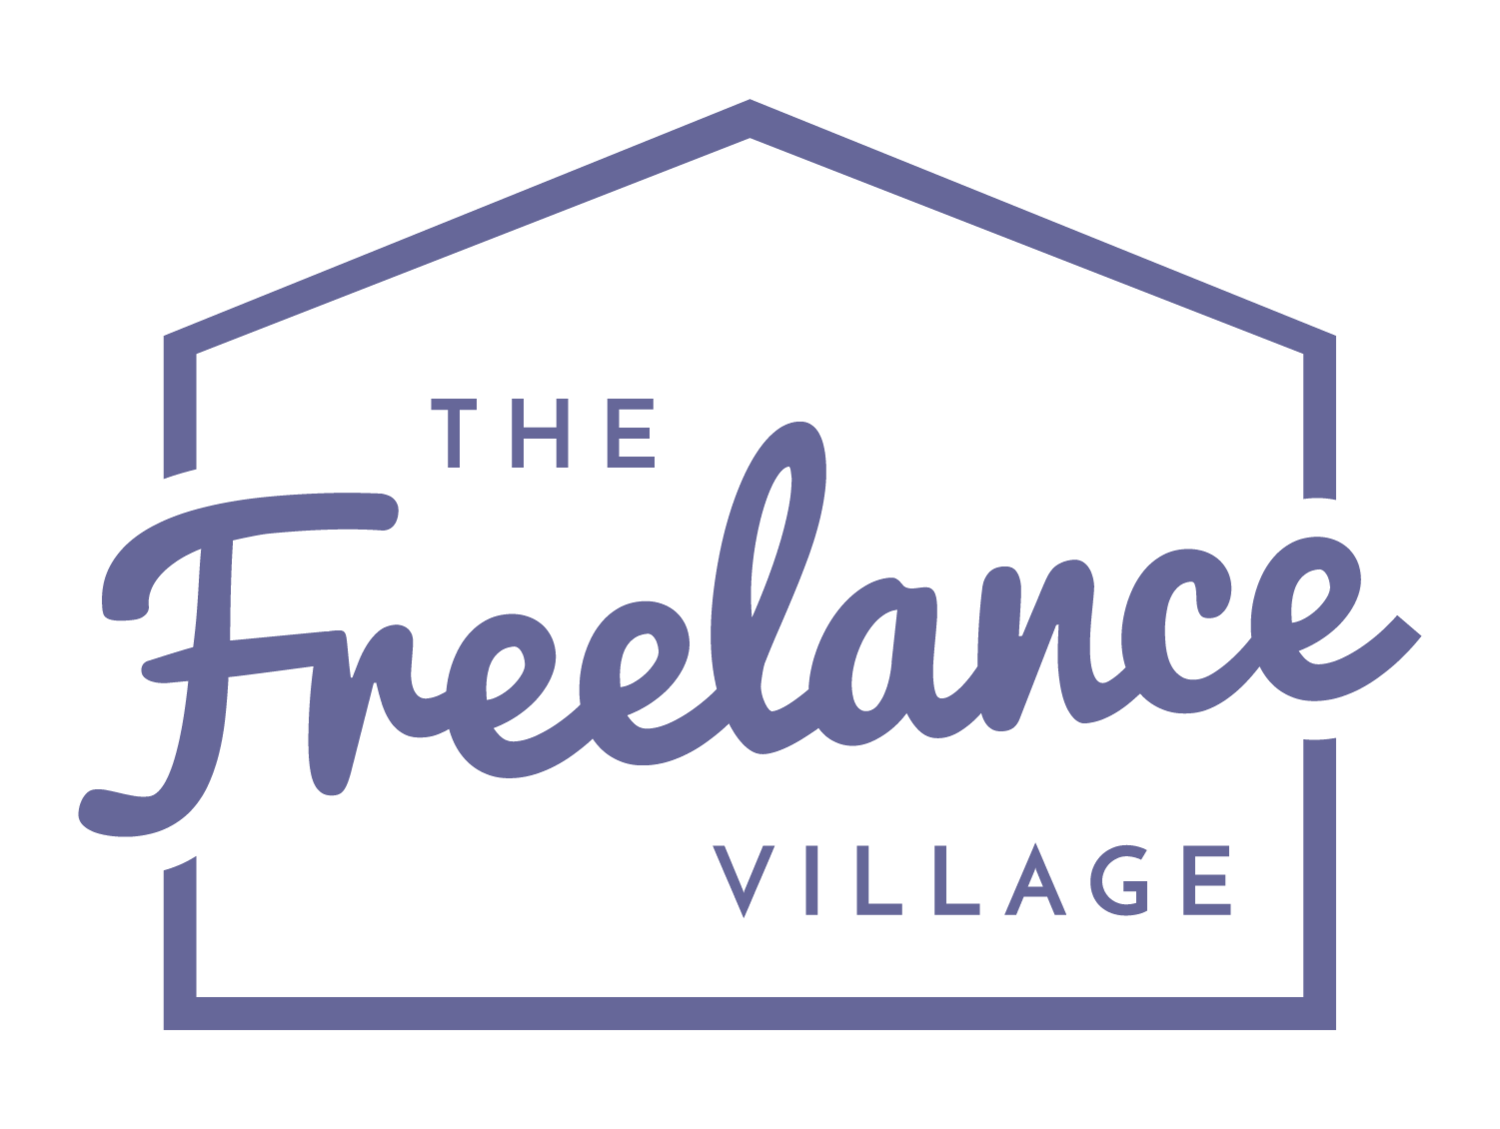 The Freelance Village - NZ's Largest Freelance Community